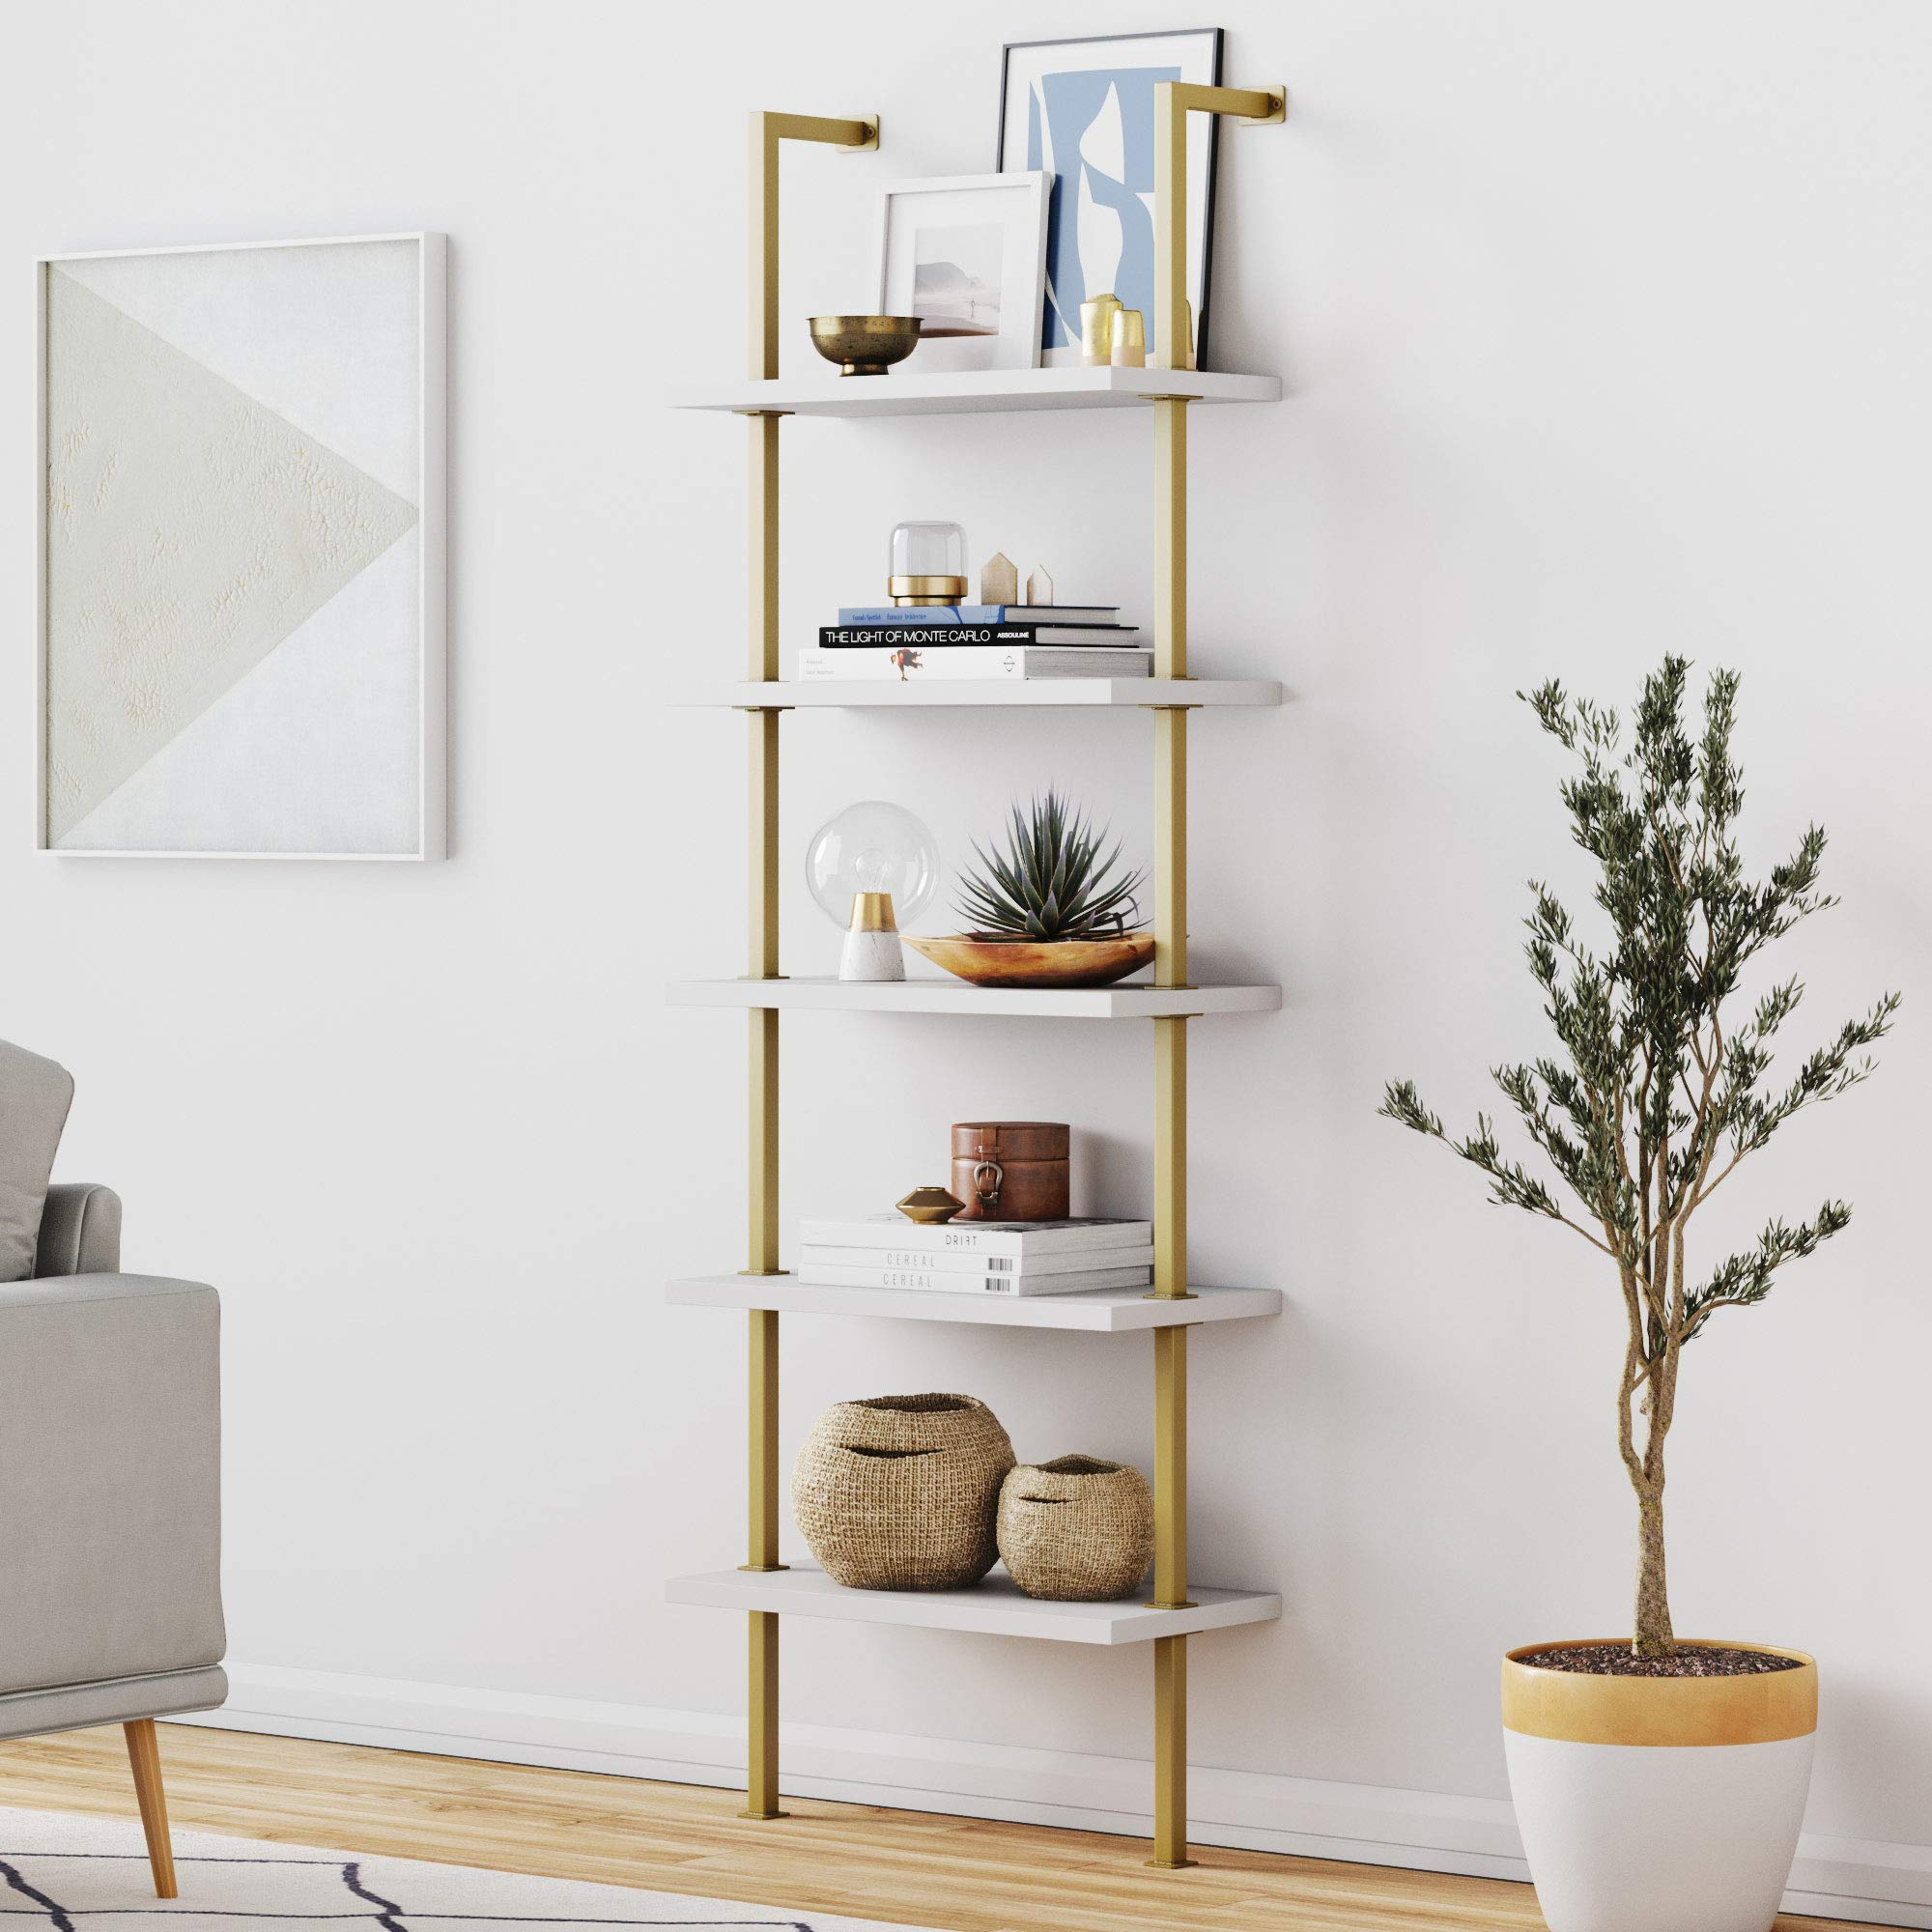 Nathan James 66001 Theo 5-Shelf Ladder Bookcase with Brass Metal Frame, White/Gold by Nathan James